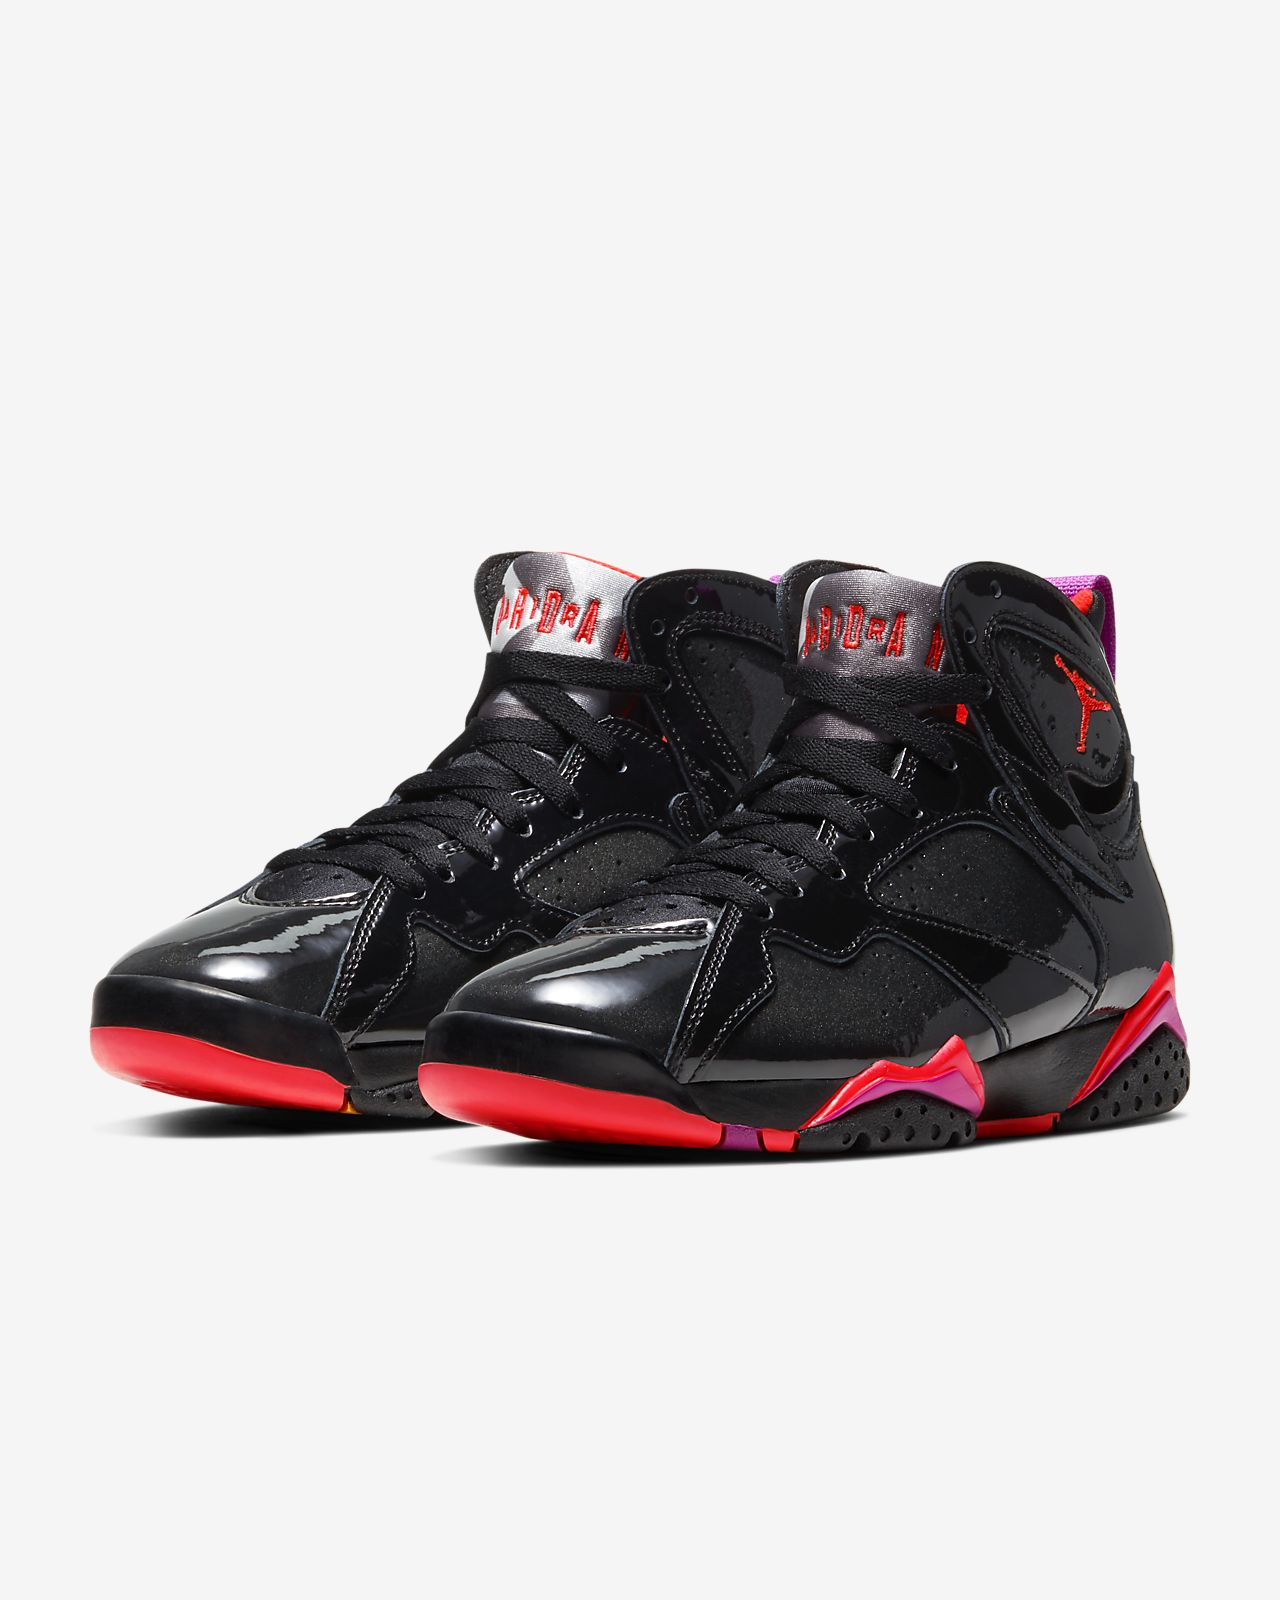 fashion great quality get cheap Air Jordan 7 Retro Women's Shoe. Nike.com